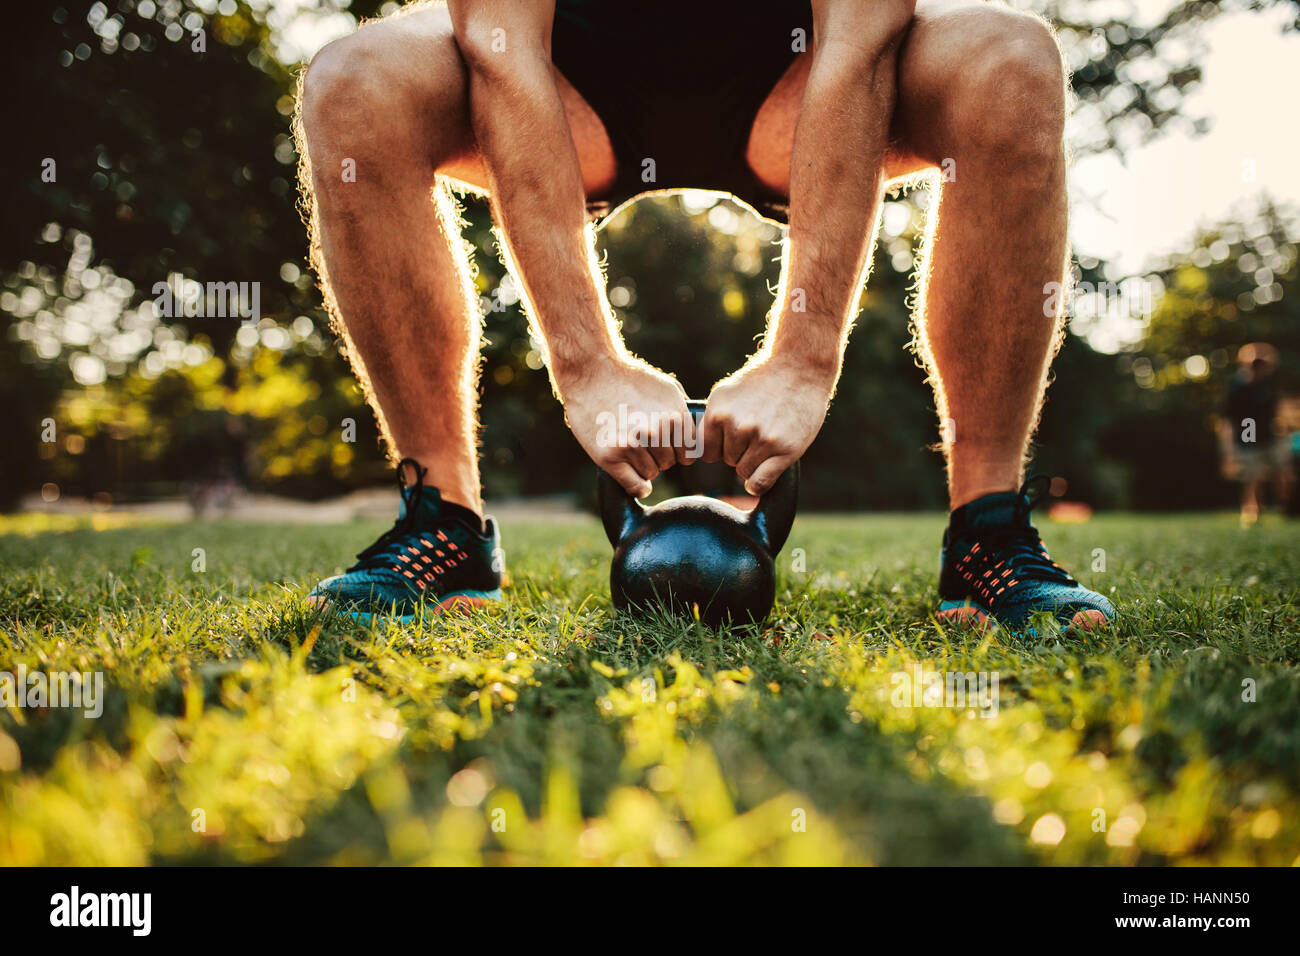 Cropped shot of fit young man doing kettlebell exercice dans le parc, se concentrer sur mains tenant électrique Banque D'Images